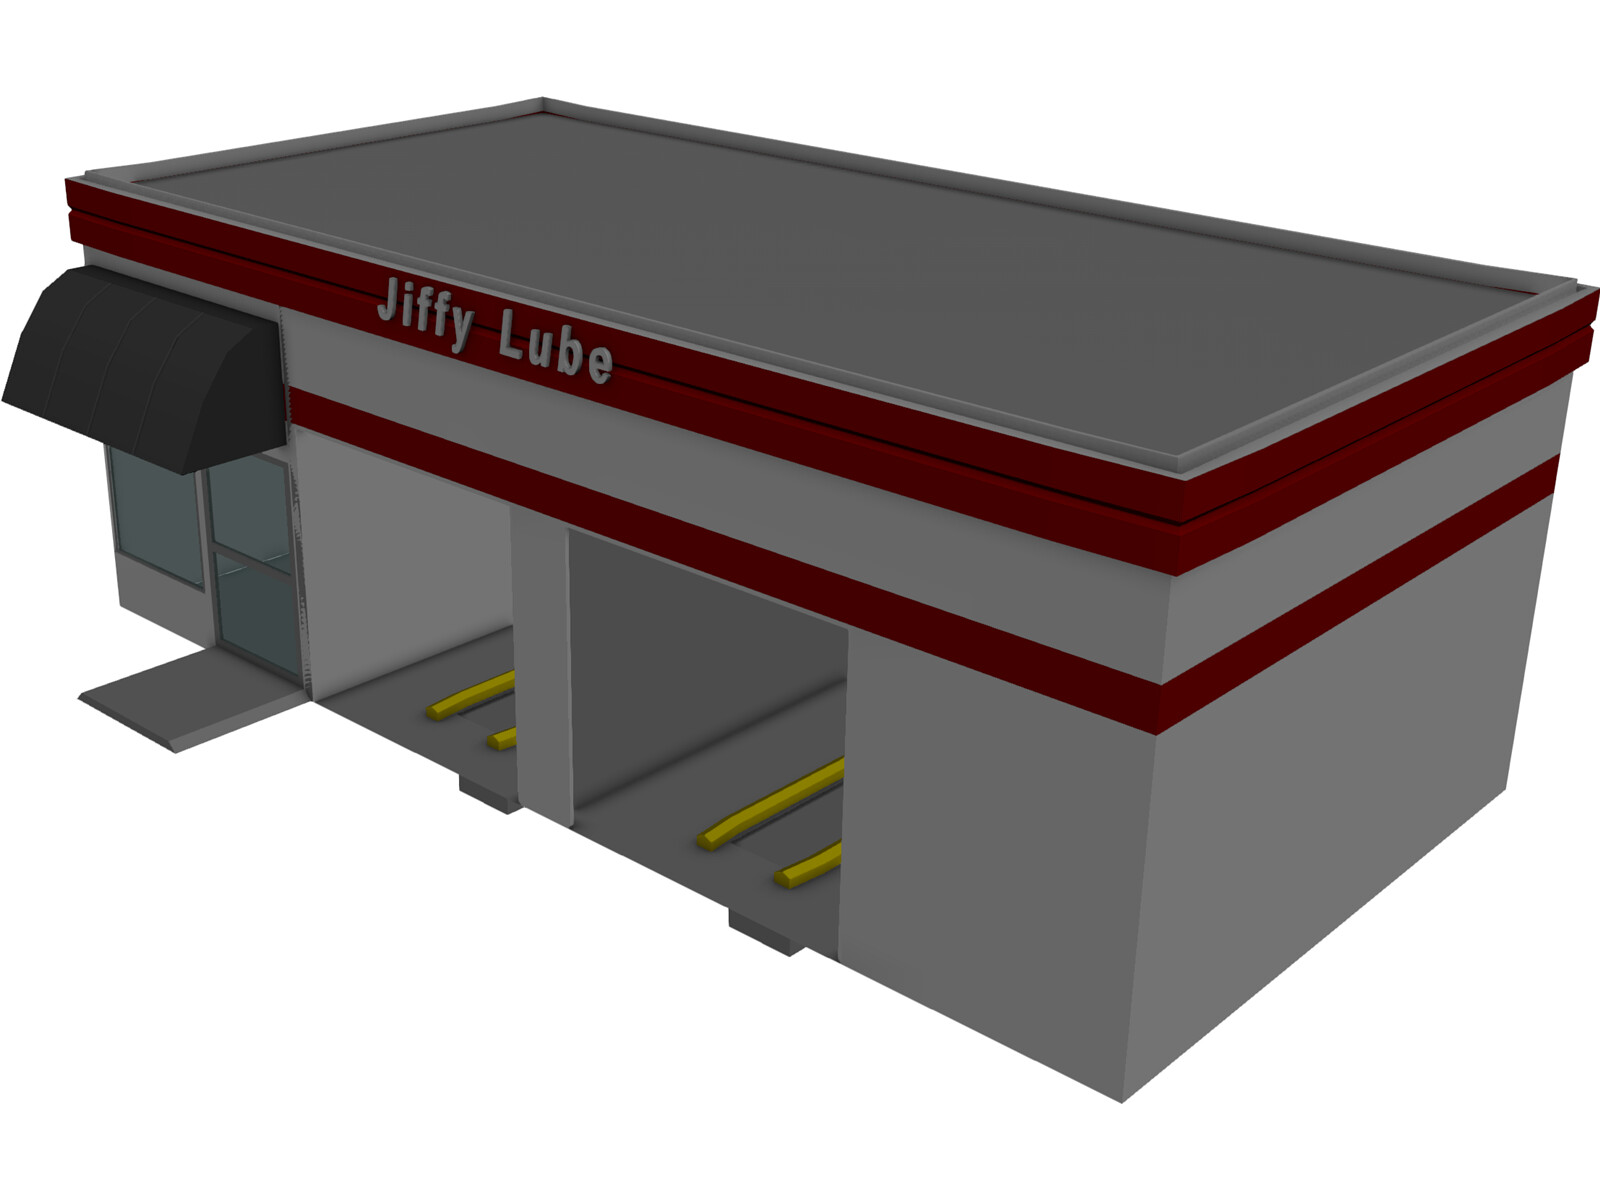 Jiffy Lube Car Repair 3D Model